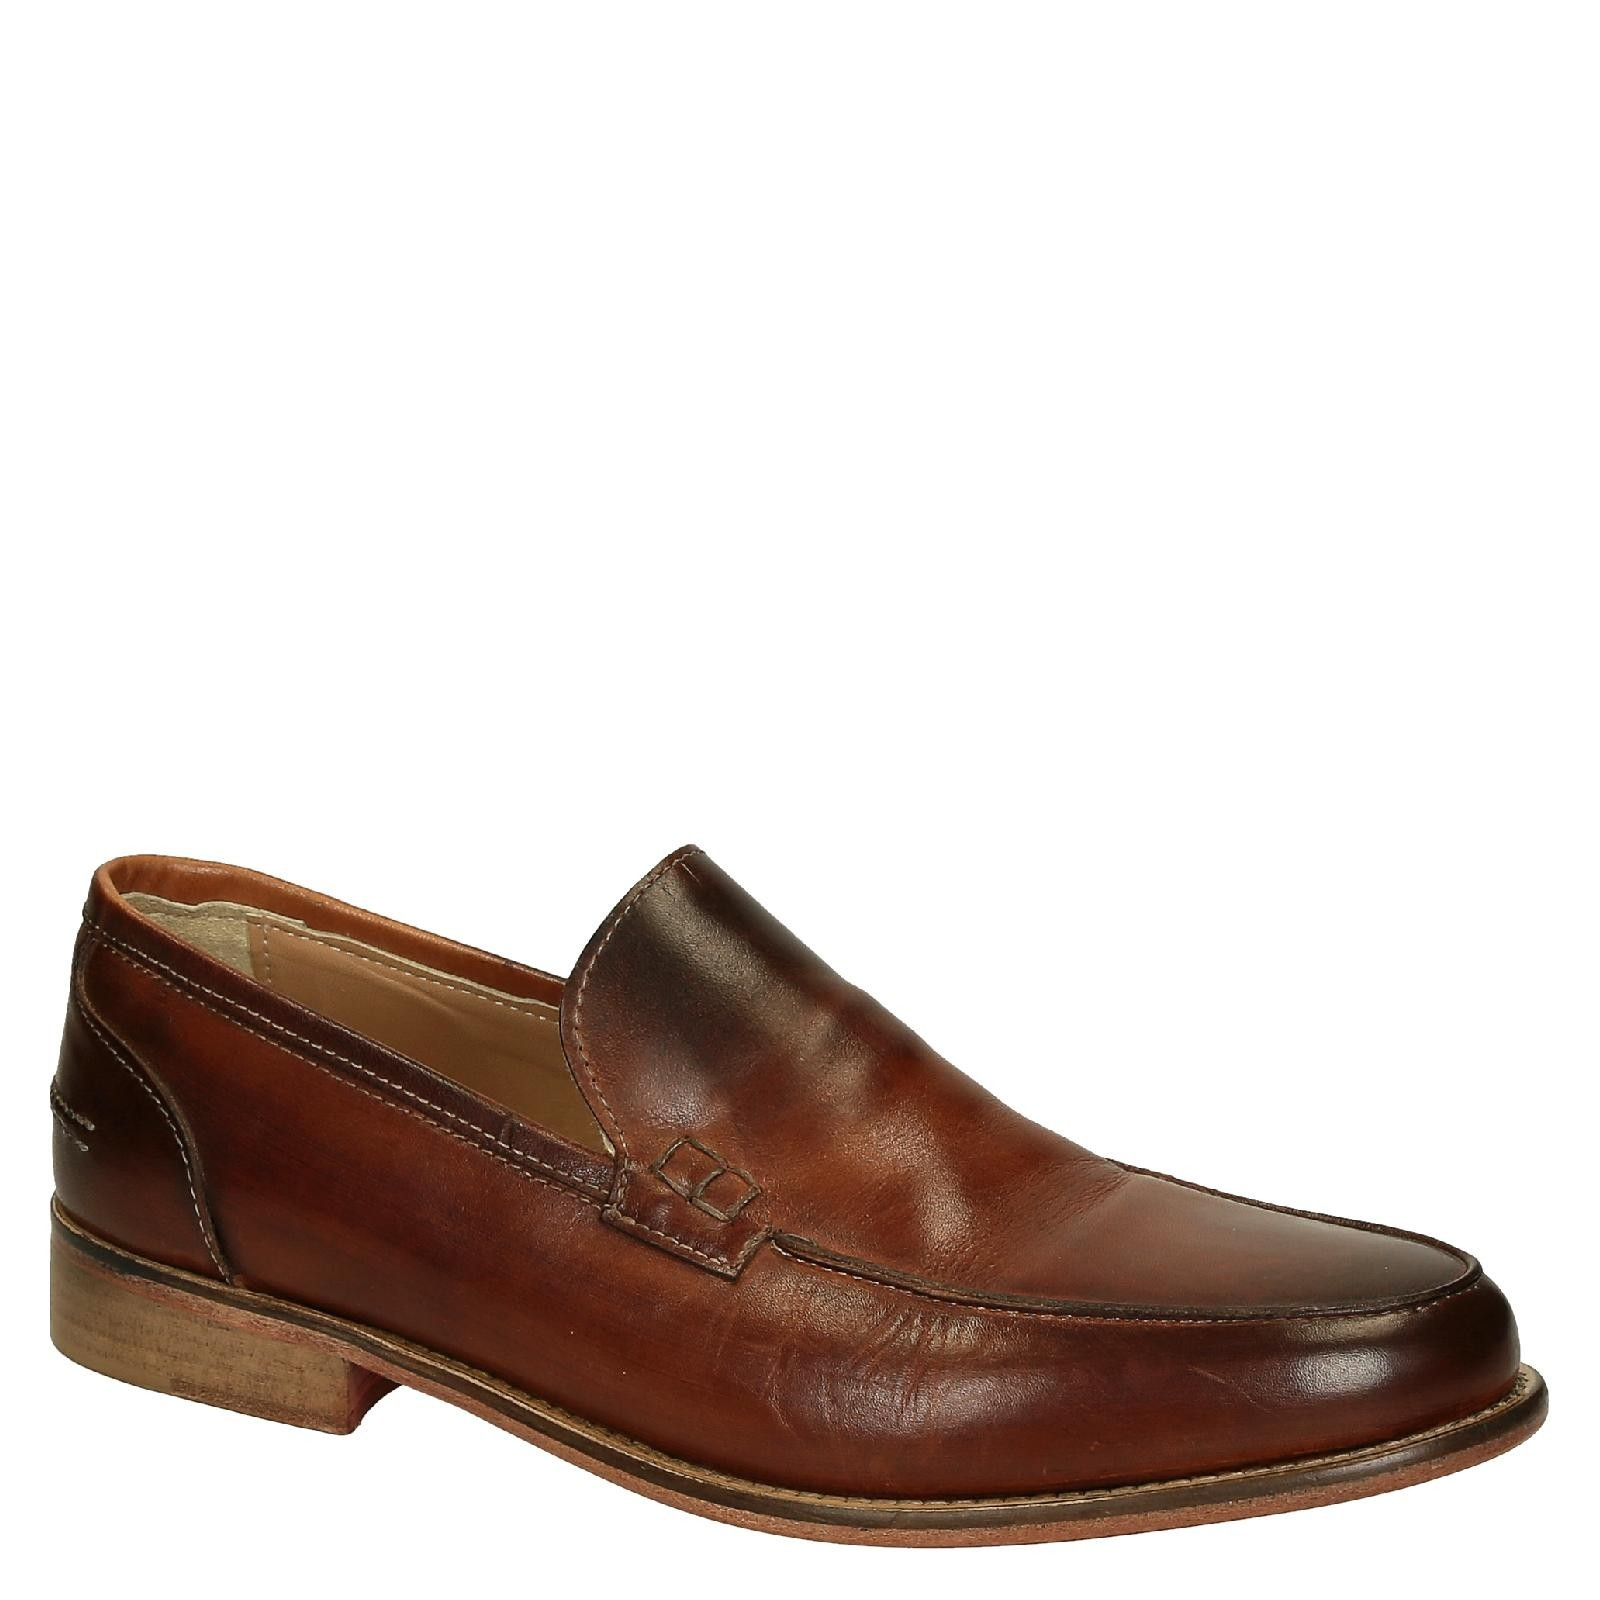 calf leather s loafers shoes handmade italian